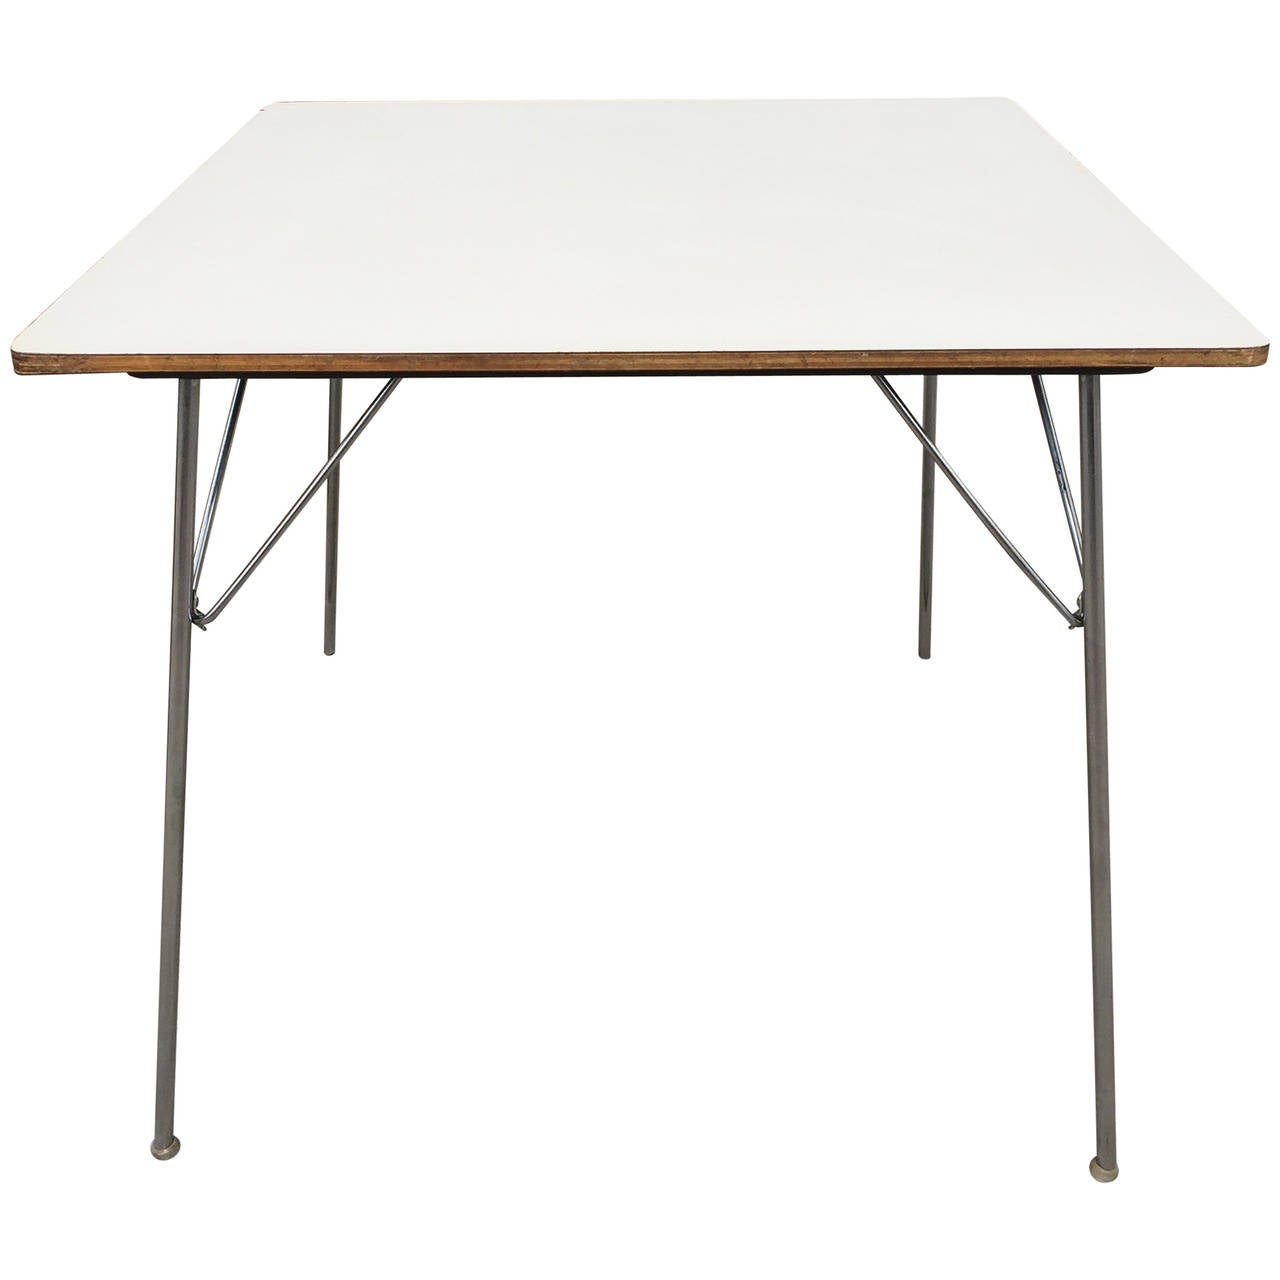 Charles and ray eames dtm table for herman miller circa - Eames table herman miller ...